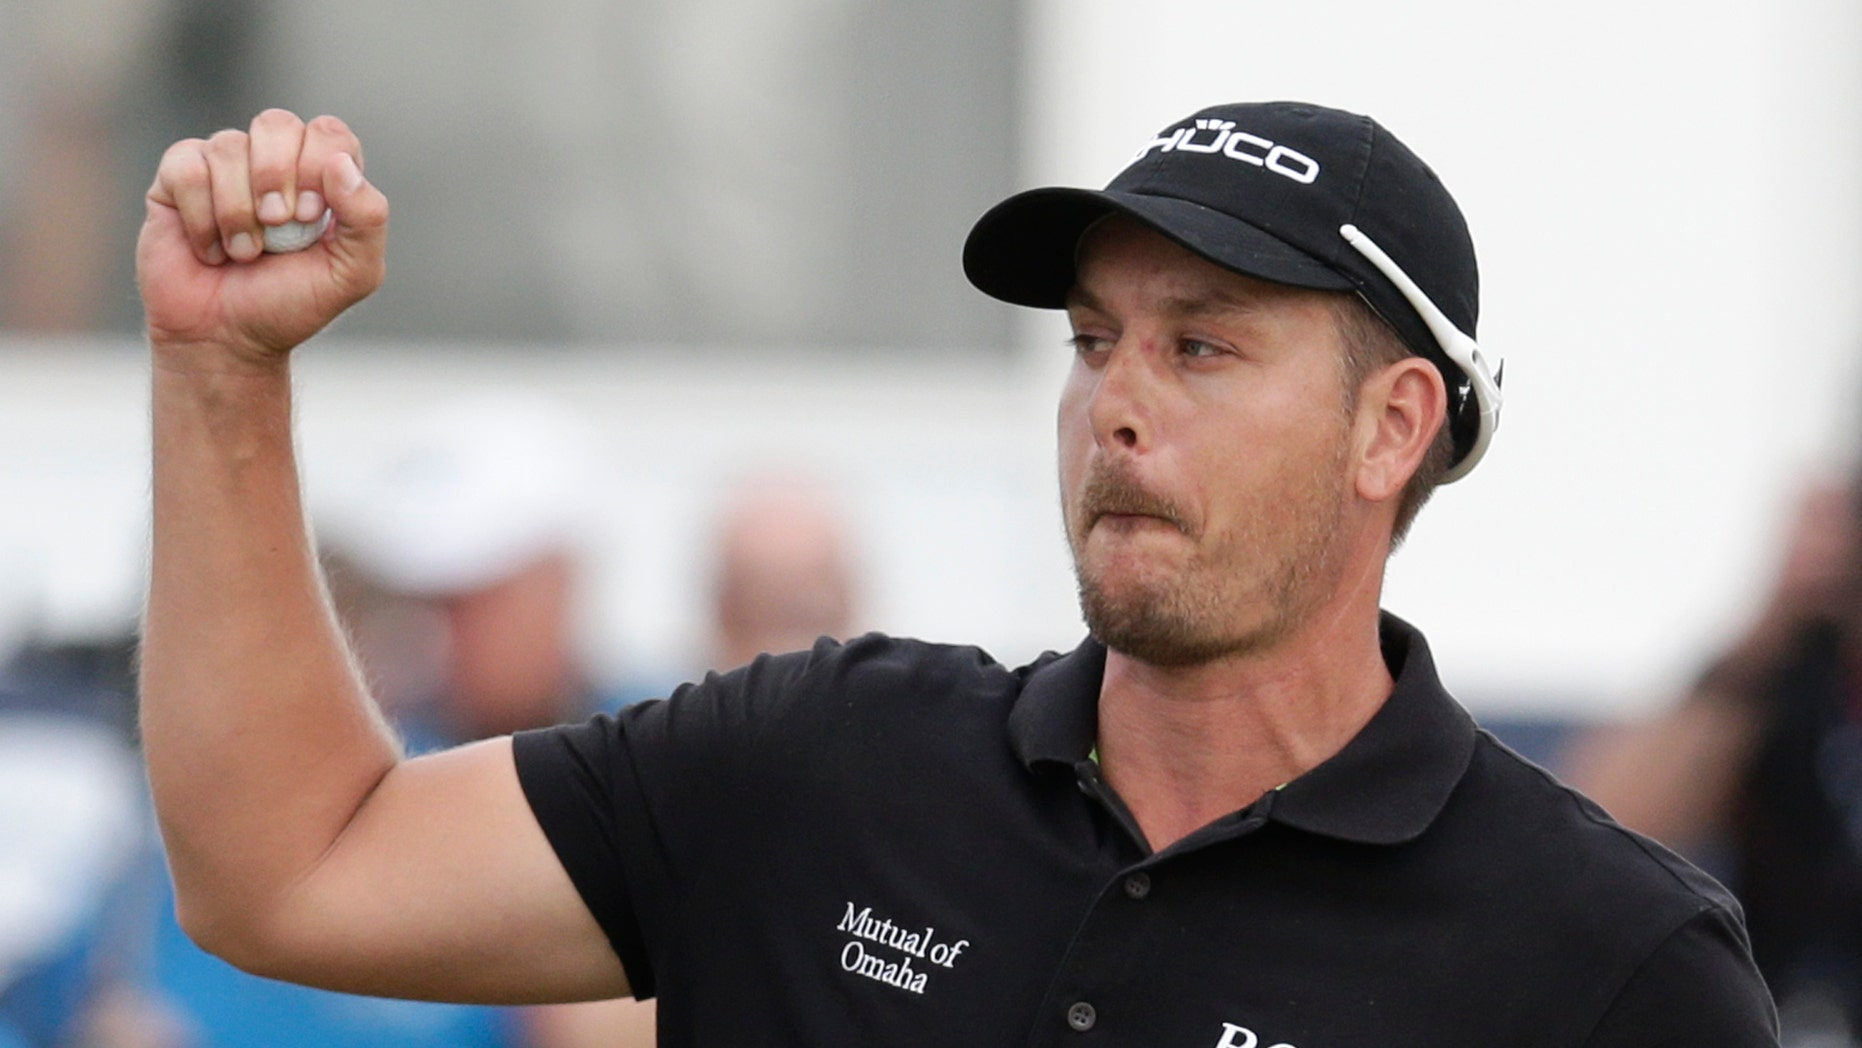 FILE - In this Nov. 17, 2013, file photo, Henrik Stenson from Sweden celebrates after winning the DP World Golf Championship, in Dubai, United Arab Emirates. Stenson is now in South Africa to play in the Nedbank Golf Challenge starting Thursday, Dec. 5, 2013. (AP Photo/Hassan Ammar, File)